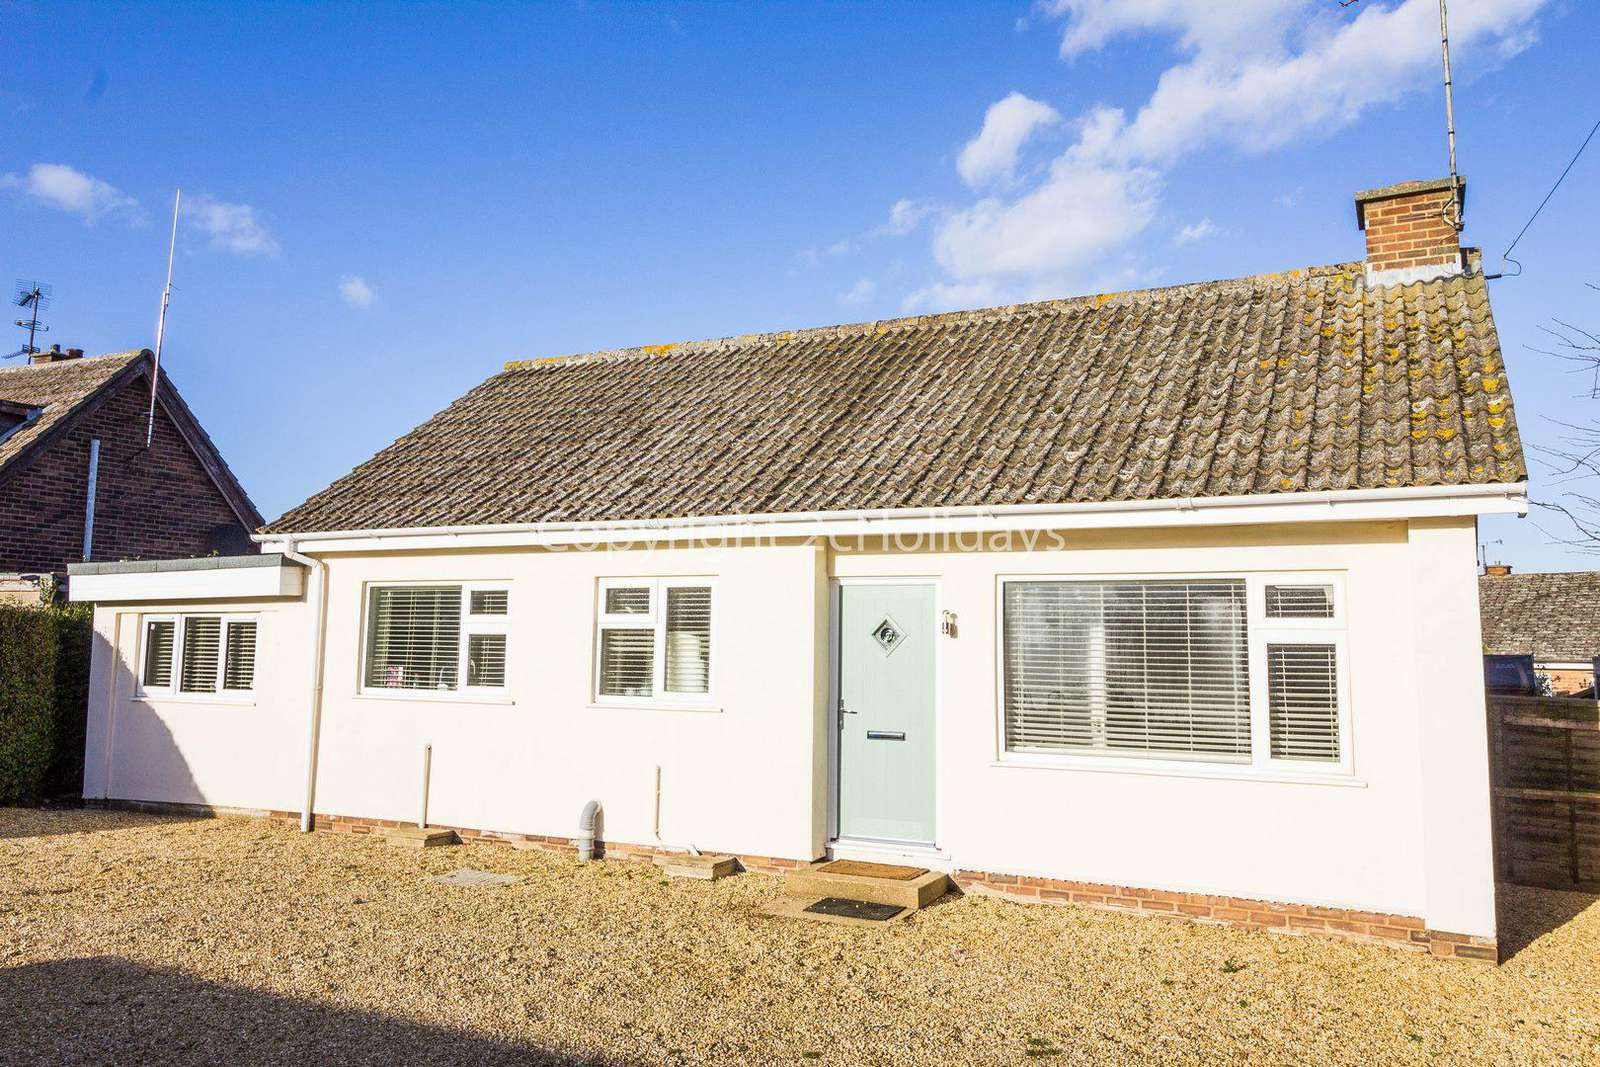 99015L – Lamsey, 4 Berth holiday cottage in Heacham. D/G C/H. Platinum deluxe rated. - property